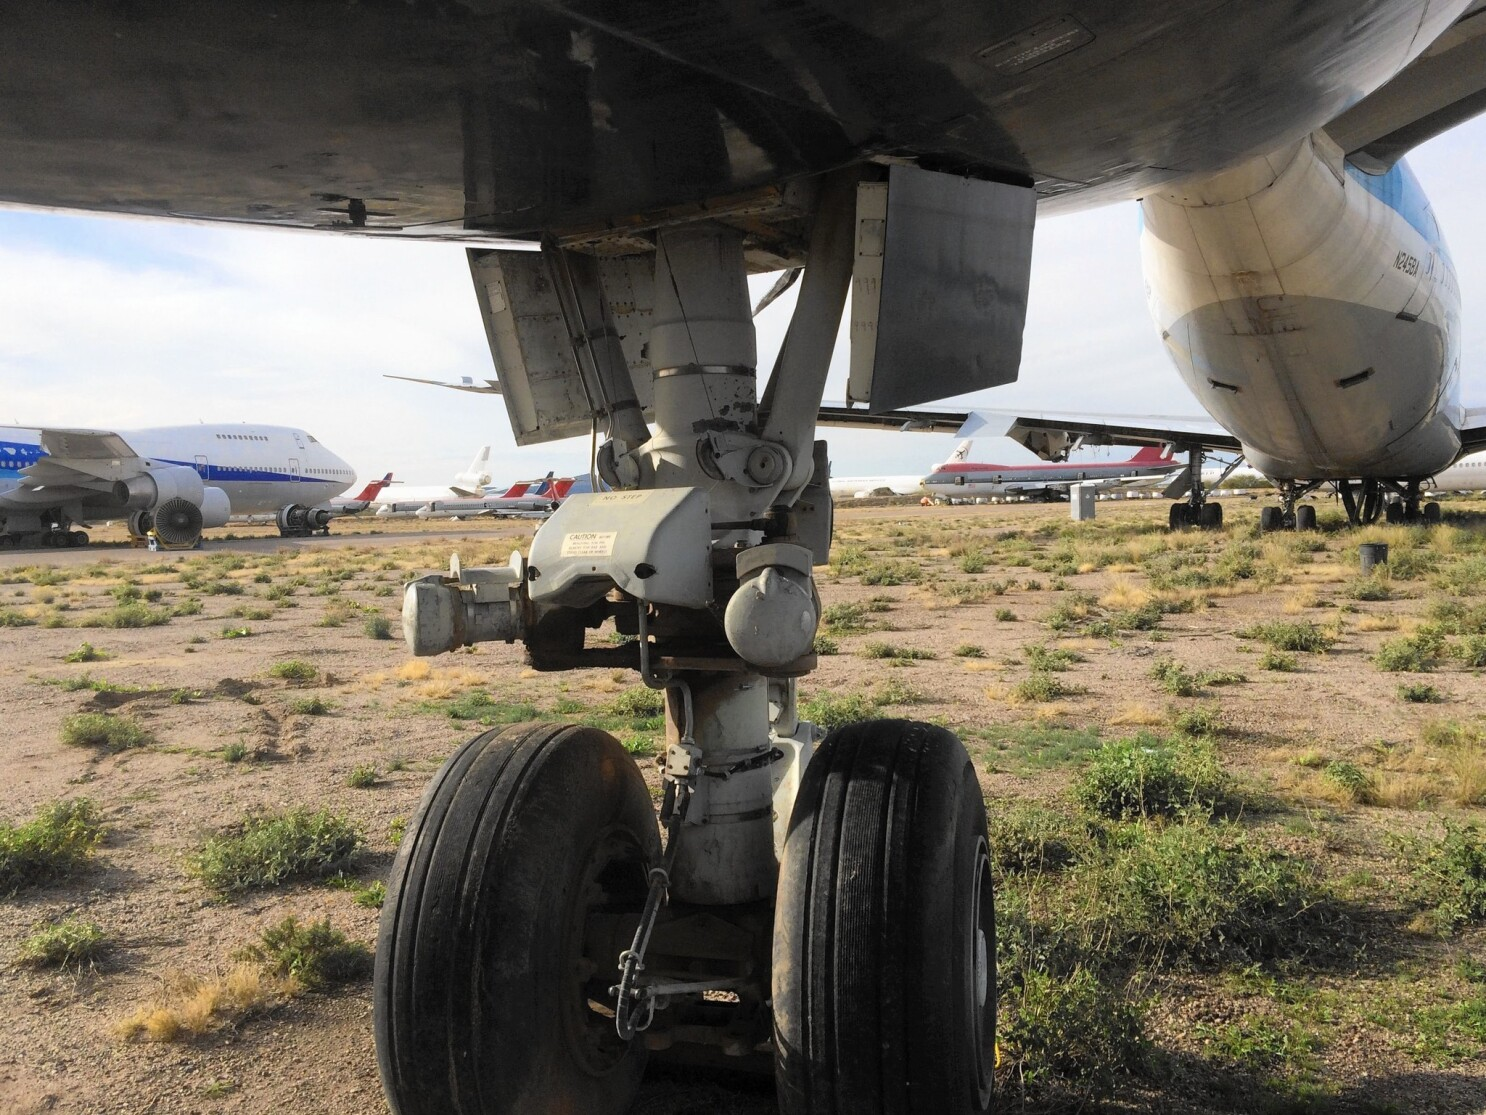 Arizona's Pinal Airpark serves as airport, graveyard